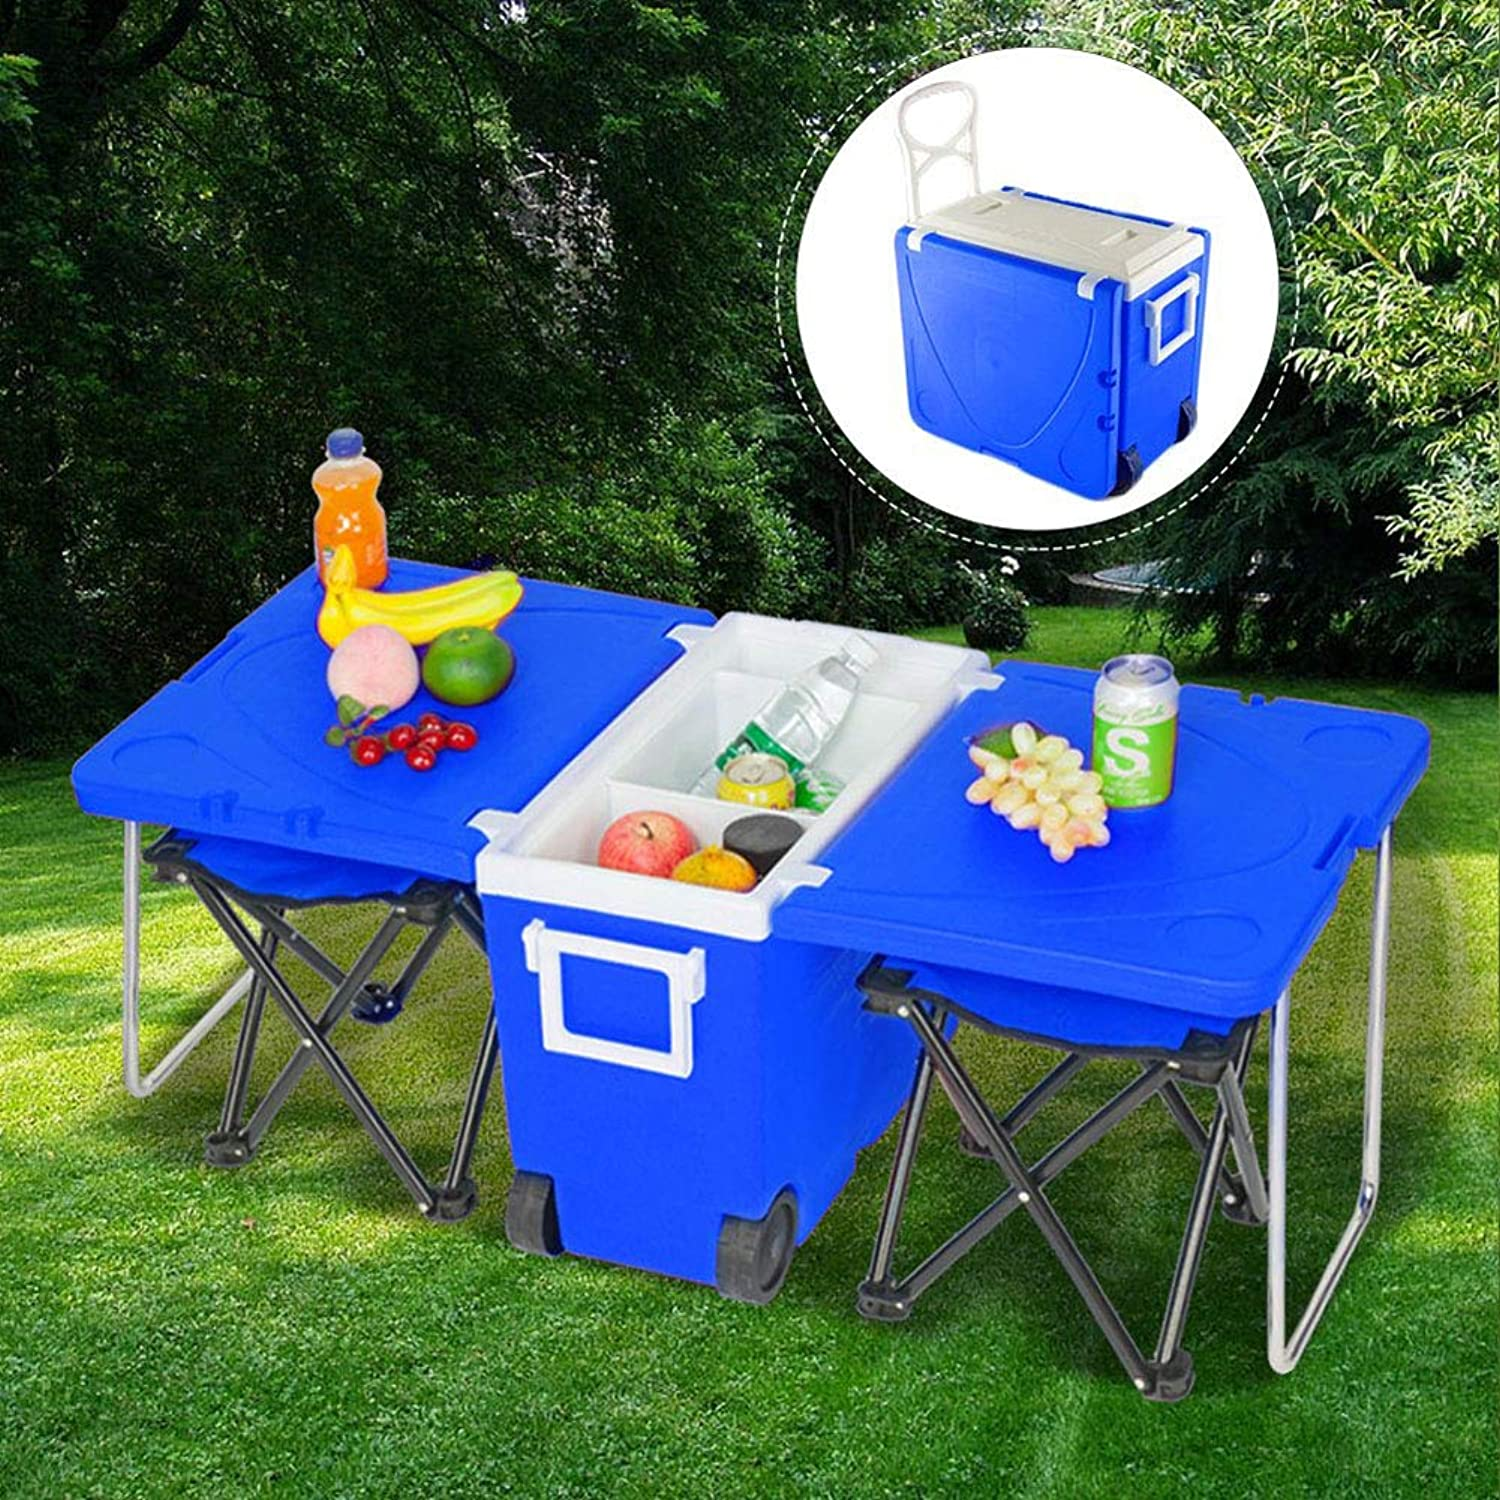 Wheeled Cooler, Rolling Cooler as Foldable Table with 2 Stools, Portable 28L Cooler with Wheels for Picnic BBQ Camping Tailgating Outdoors,blueee